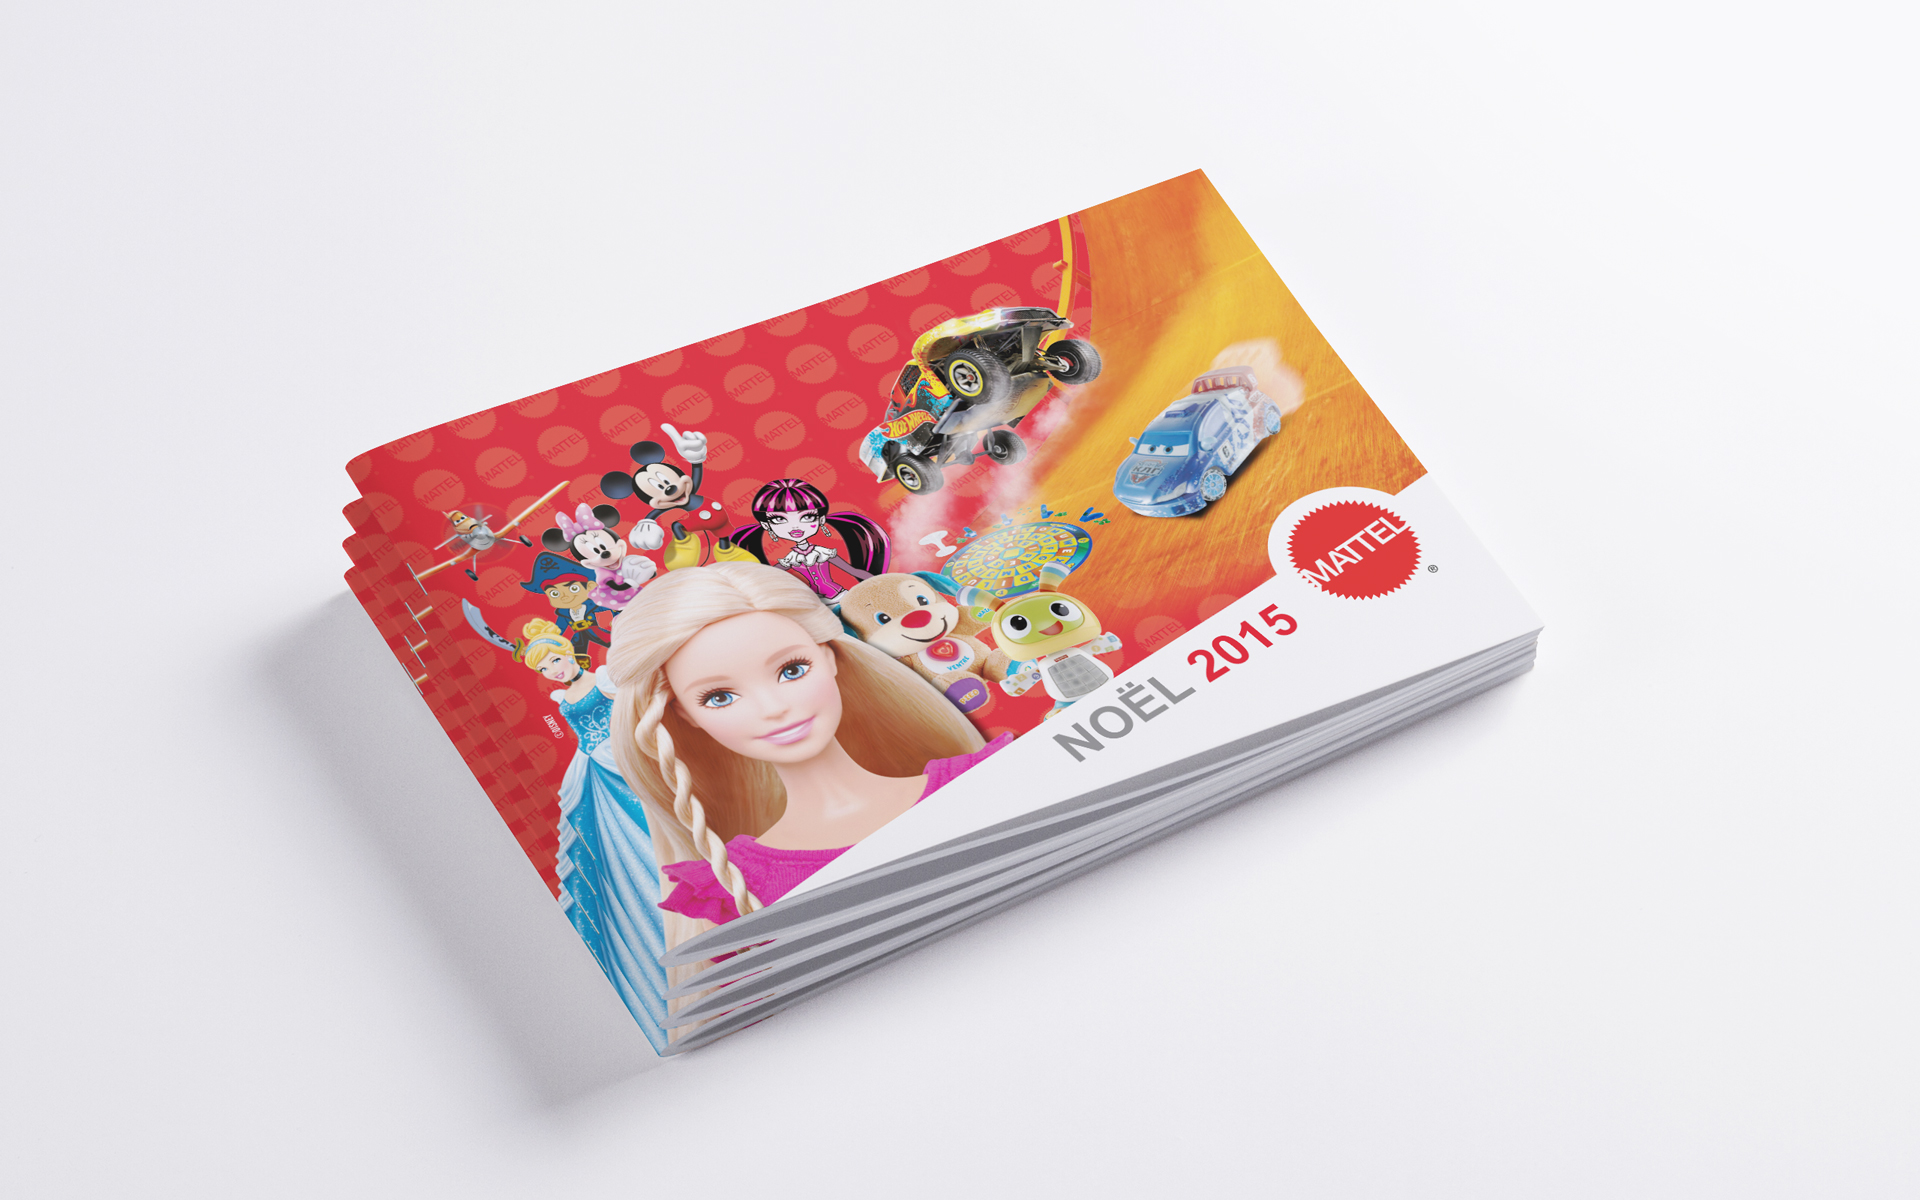 Mattel-catalogue-2015-1